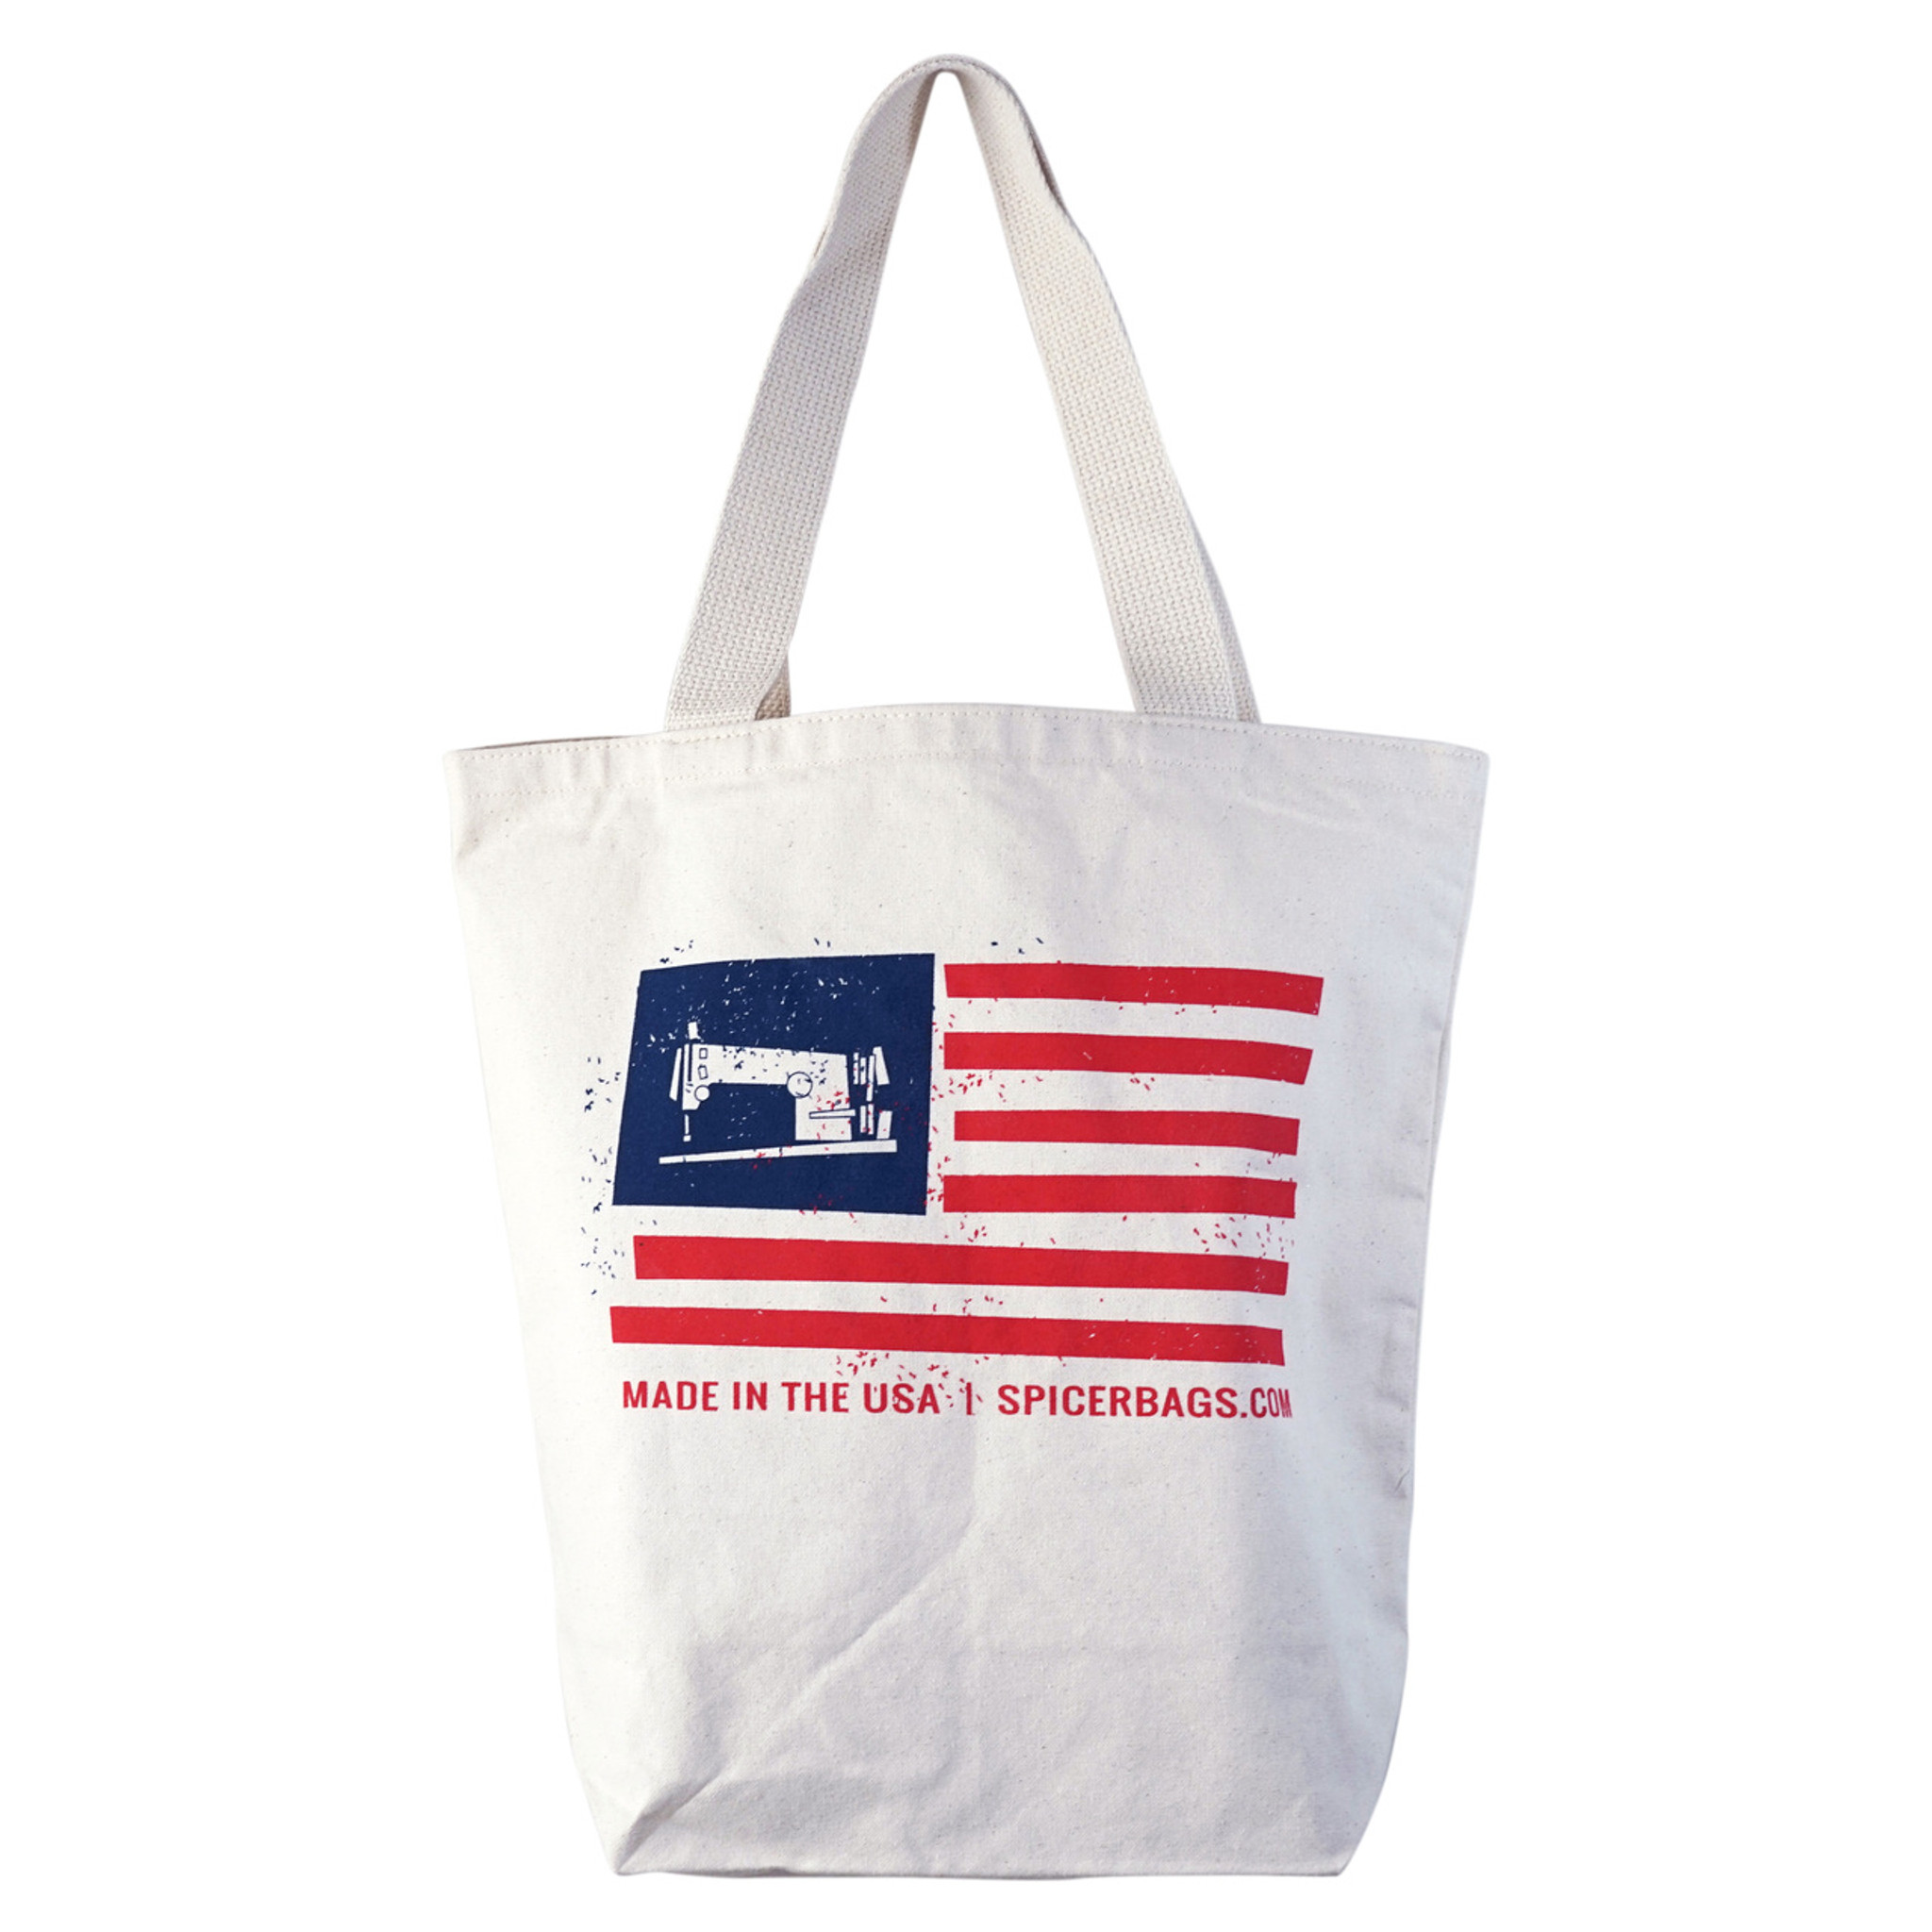 Made in the USA Grocery Tote